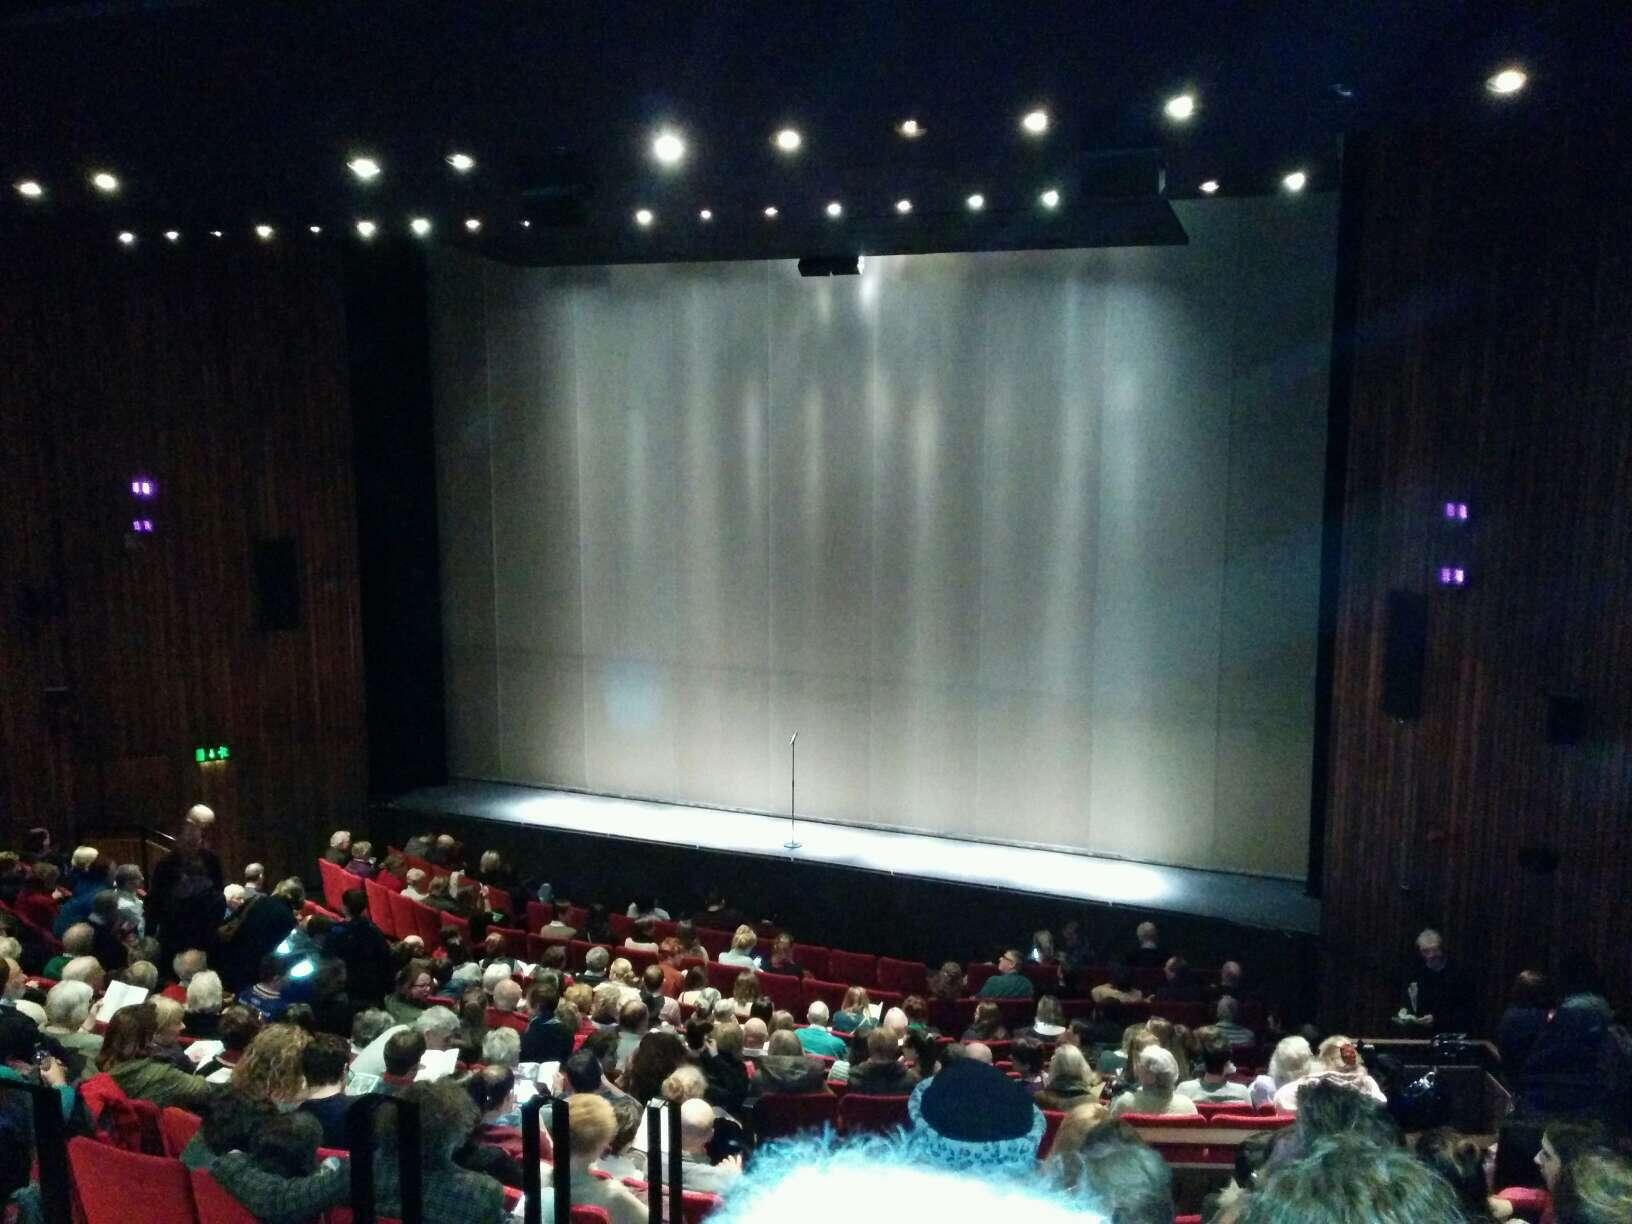 Abbey Theatre Section 4 Row s Seat 31